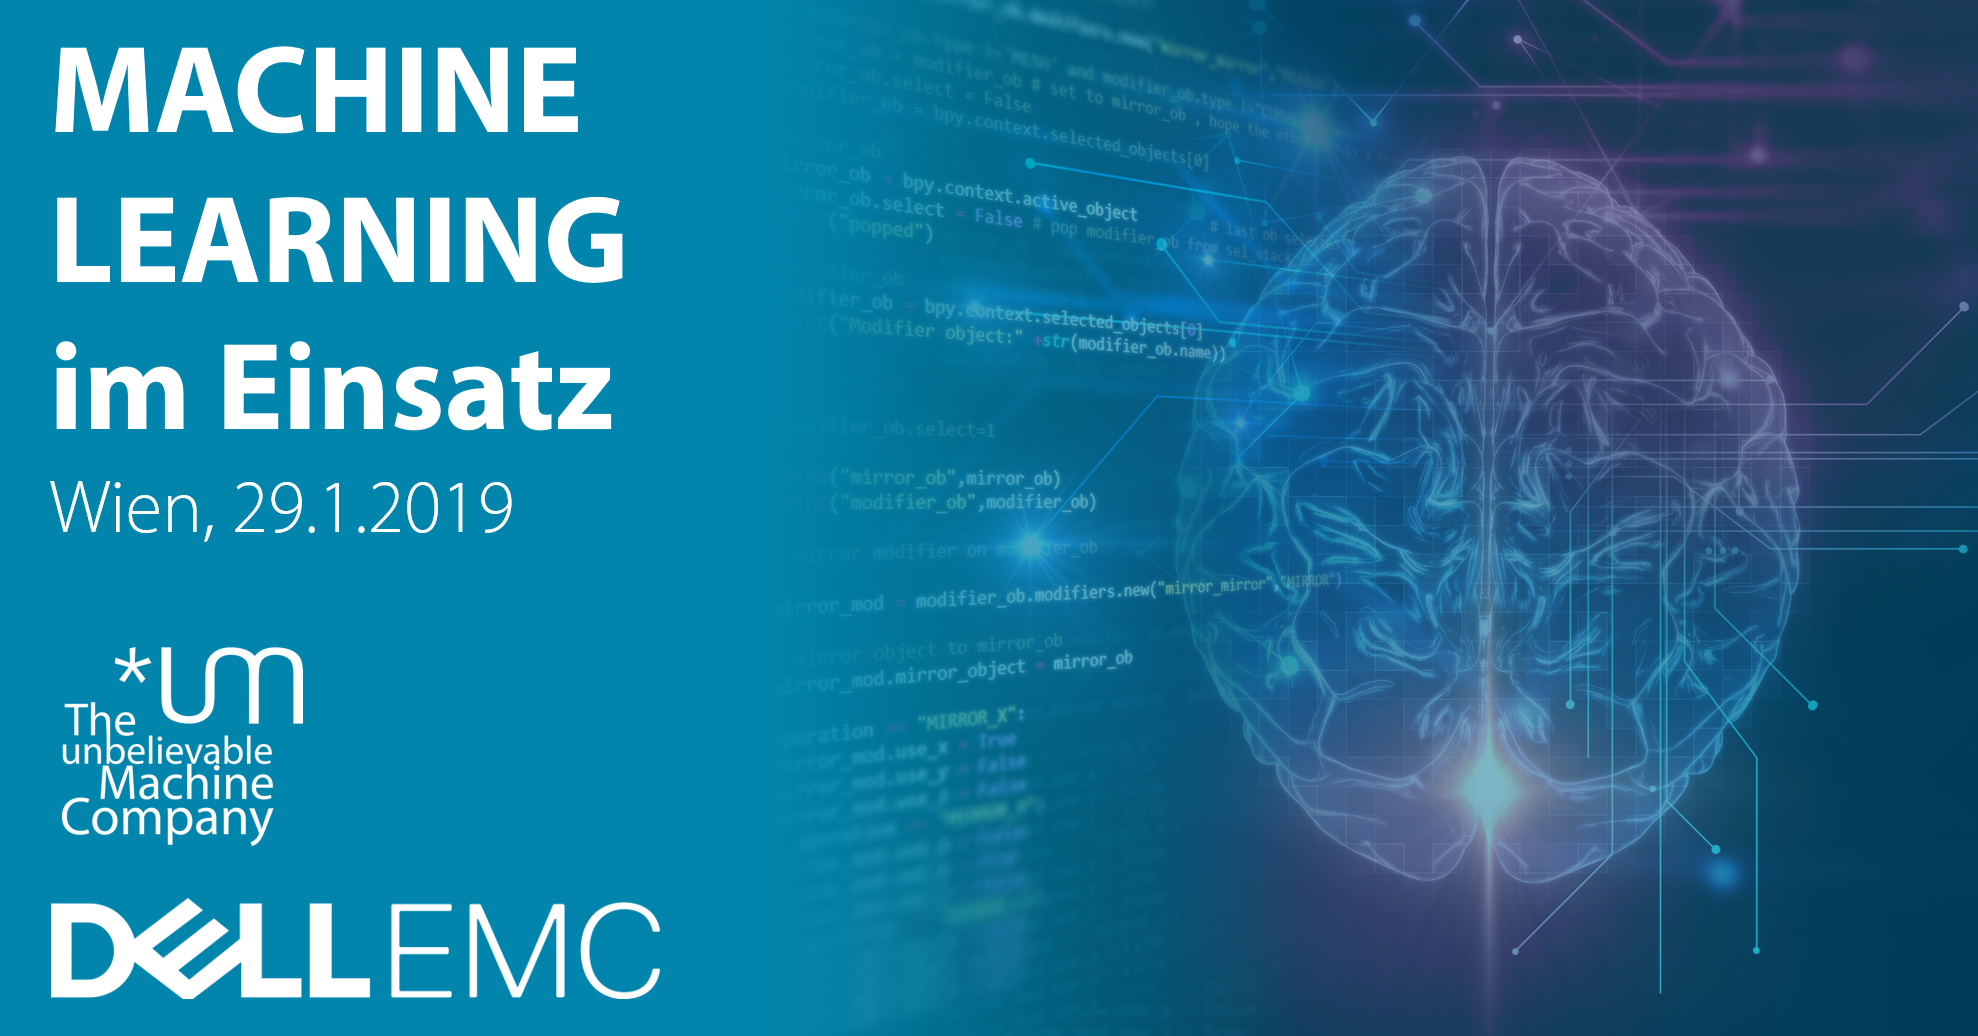 Unbelievable Machine & Dell EMC present Machine Learning in Action // January 29, Vienna